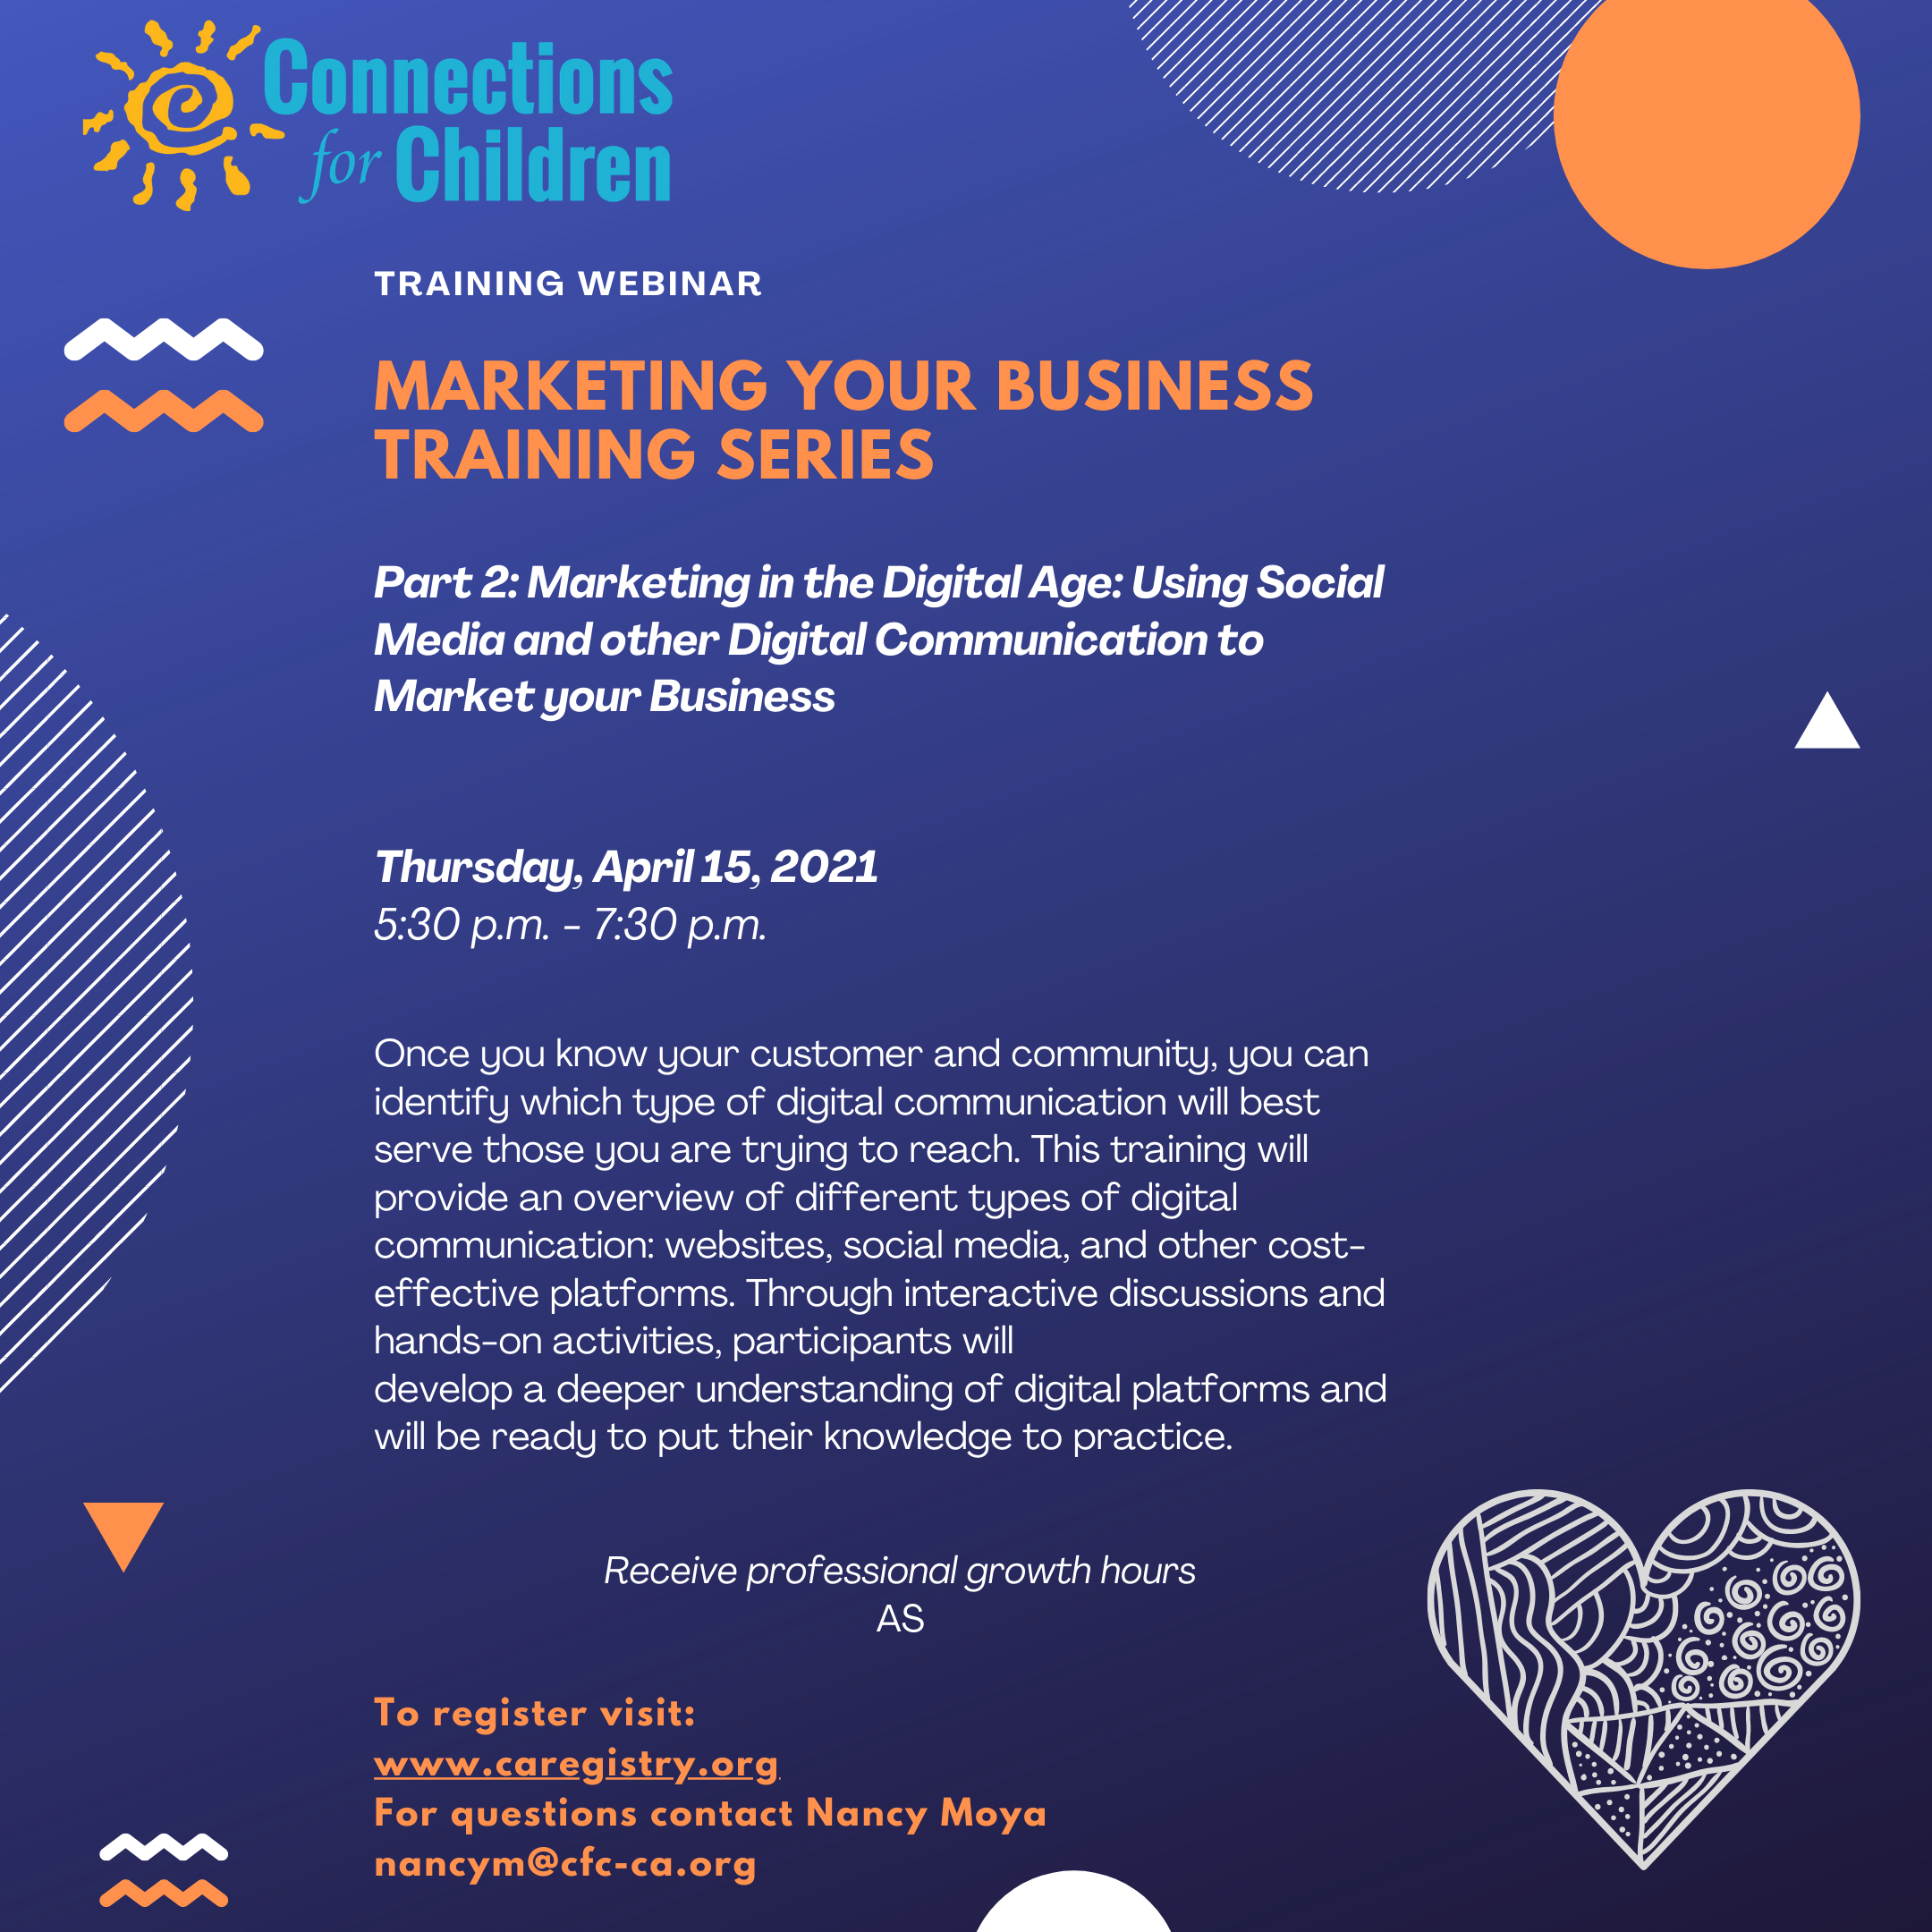 Marketing Your Business  Series Part 2:Marketing in the Digital Age: Using social media and other digital communications to market your business